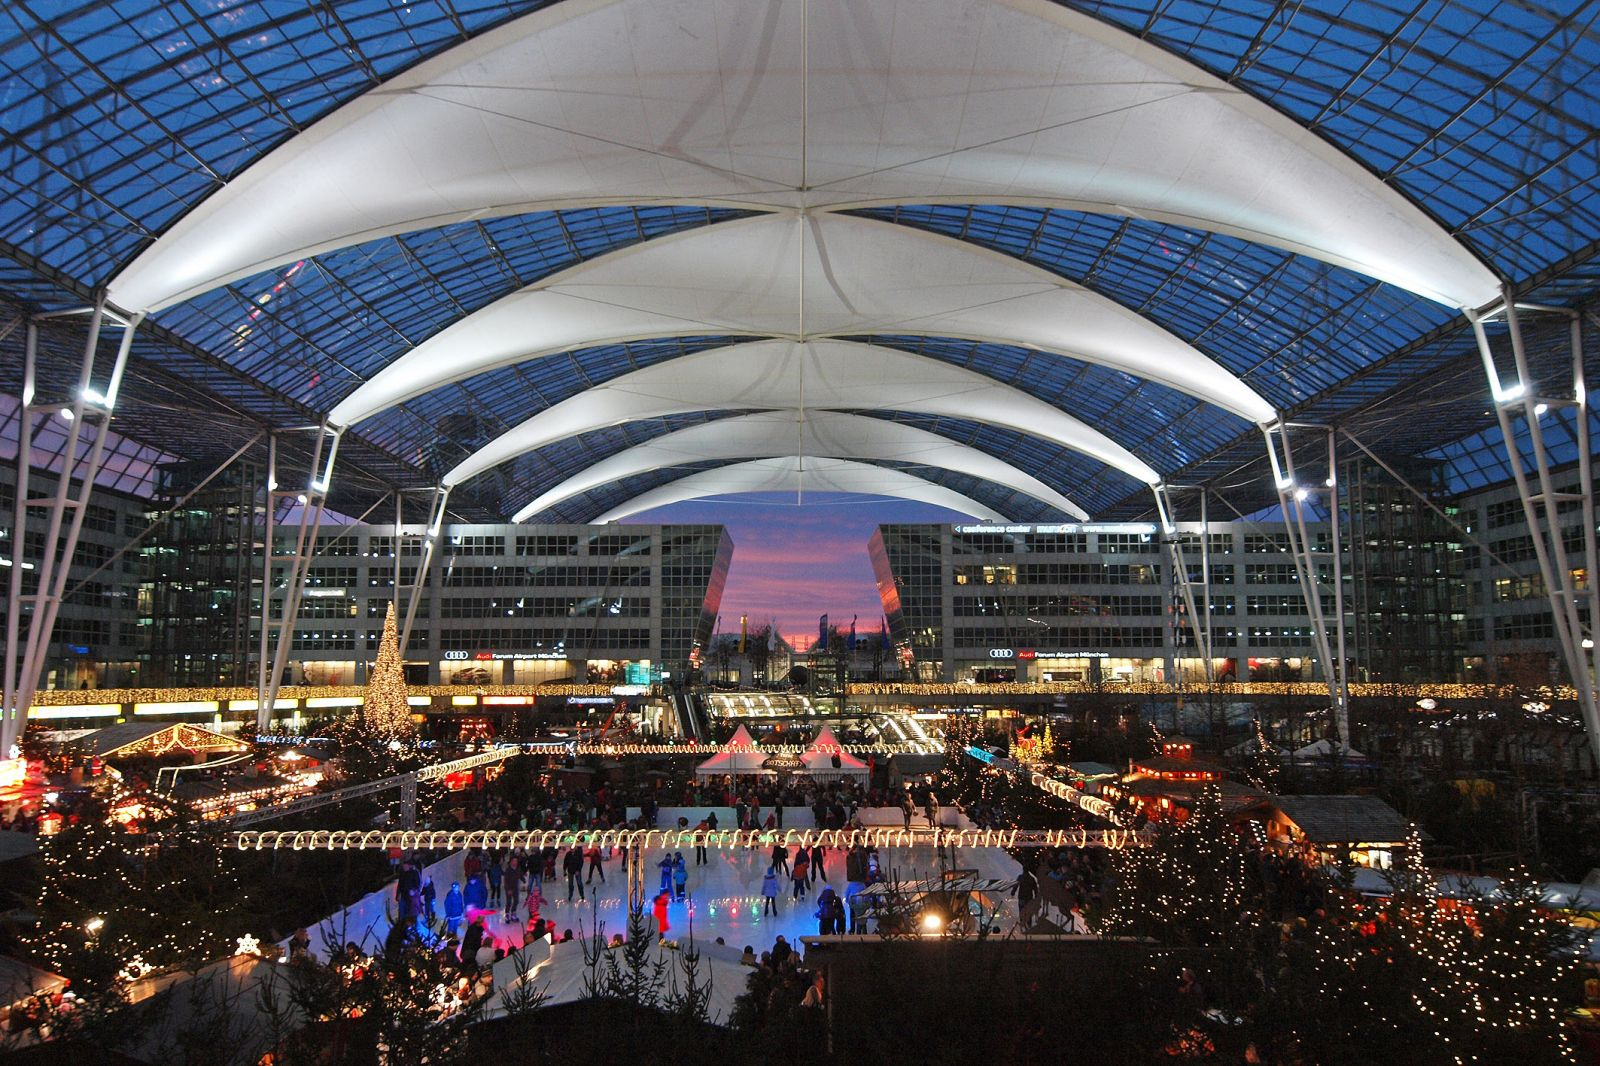 The Munich winter marketfeatures an indoor ice skating rink.